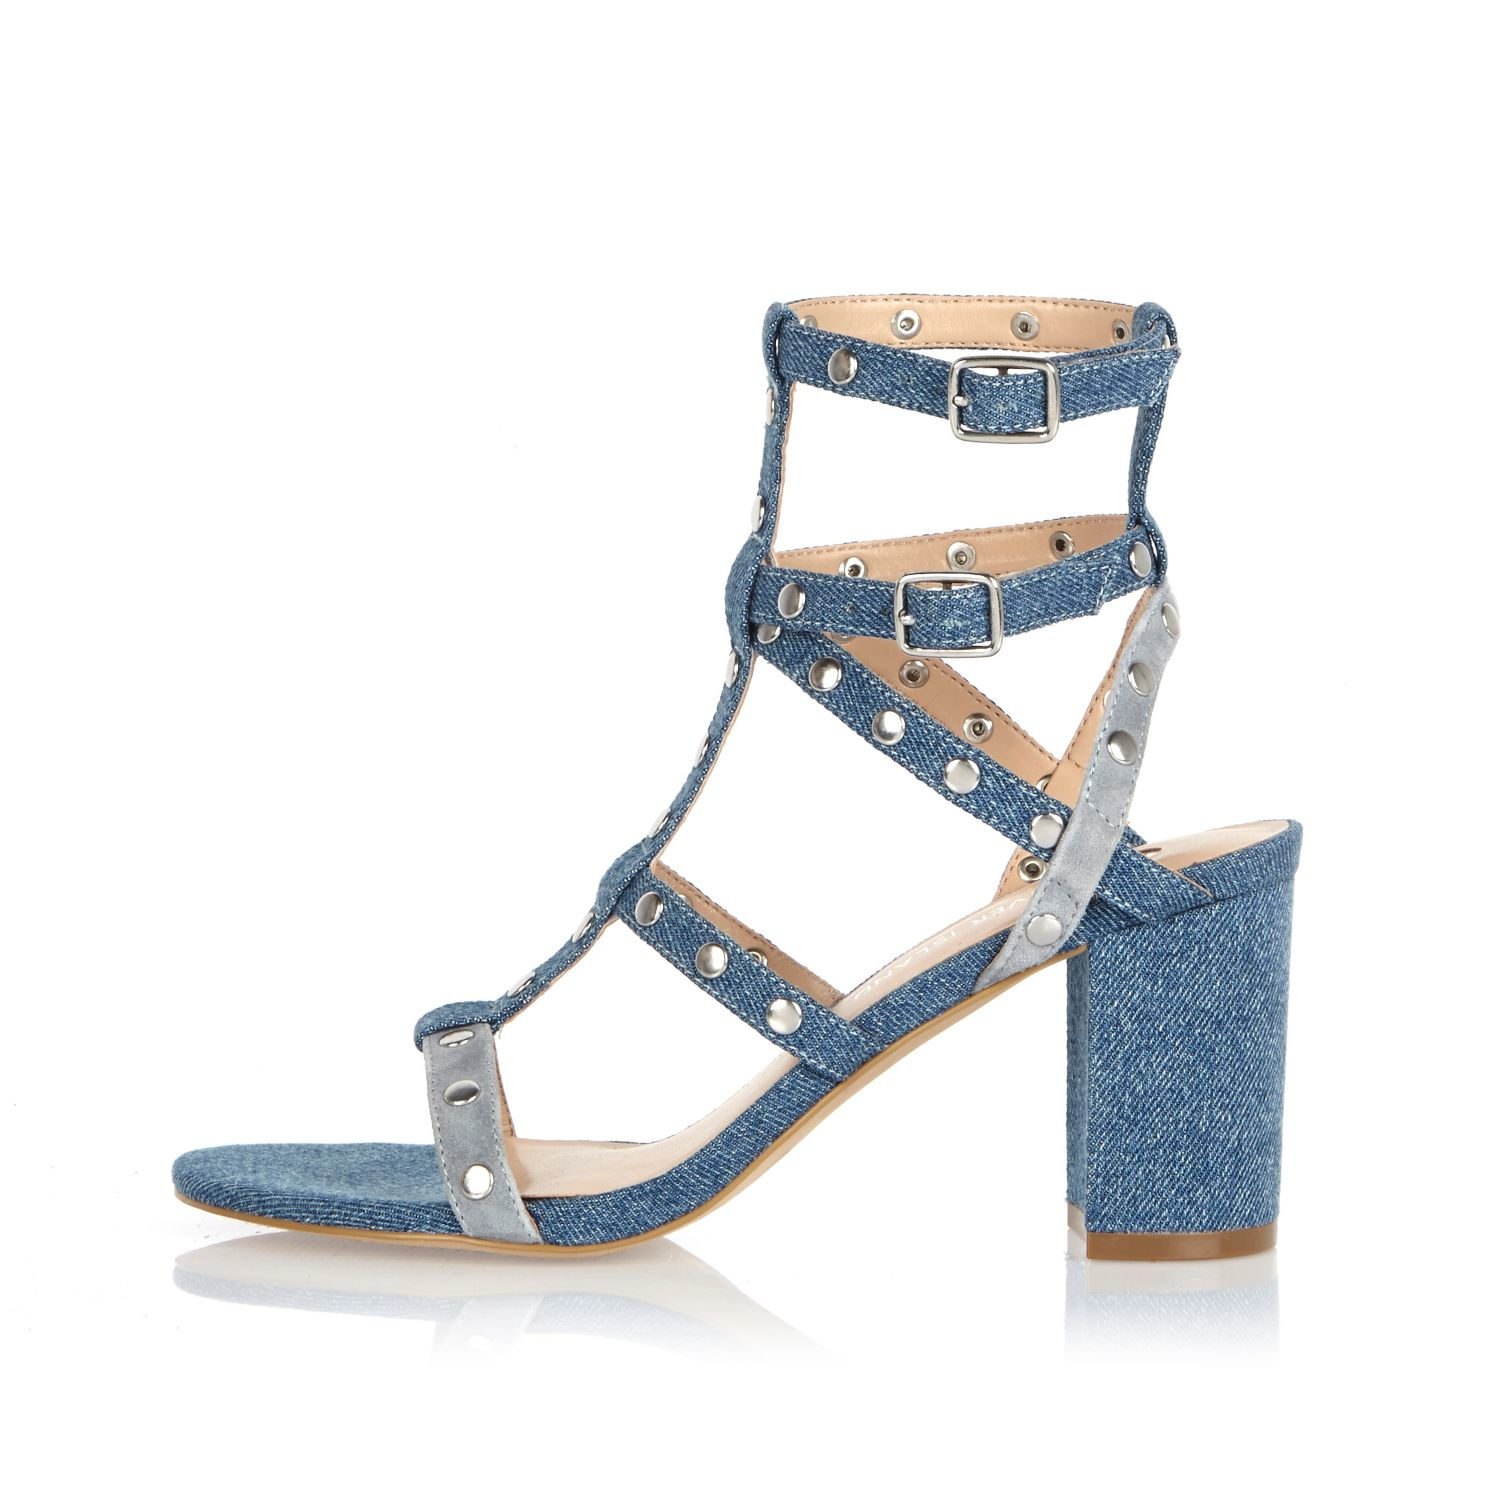 Womens river sandals - Gallery